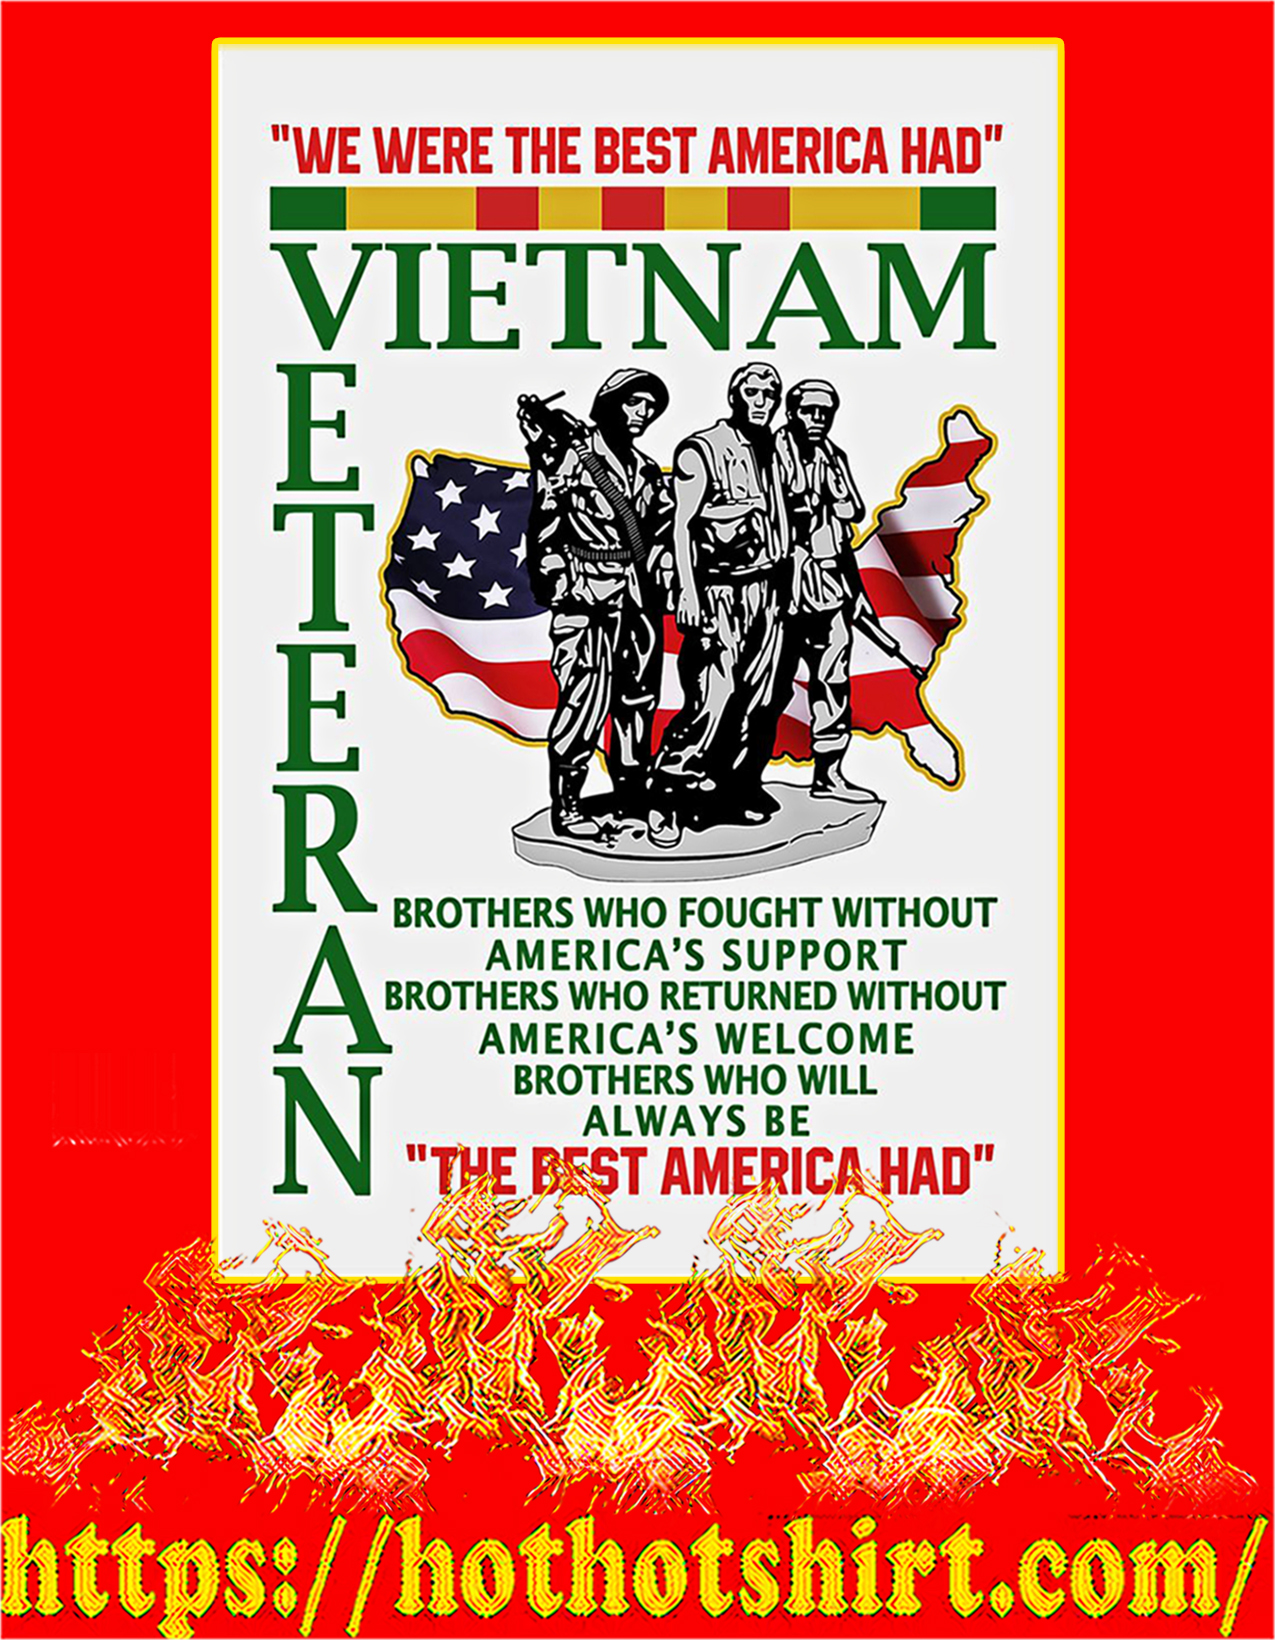 We were the best american had poster - A2